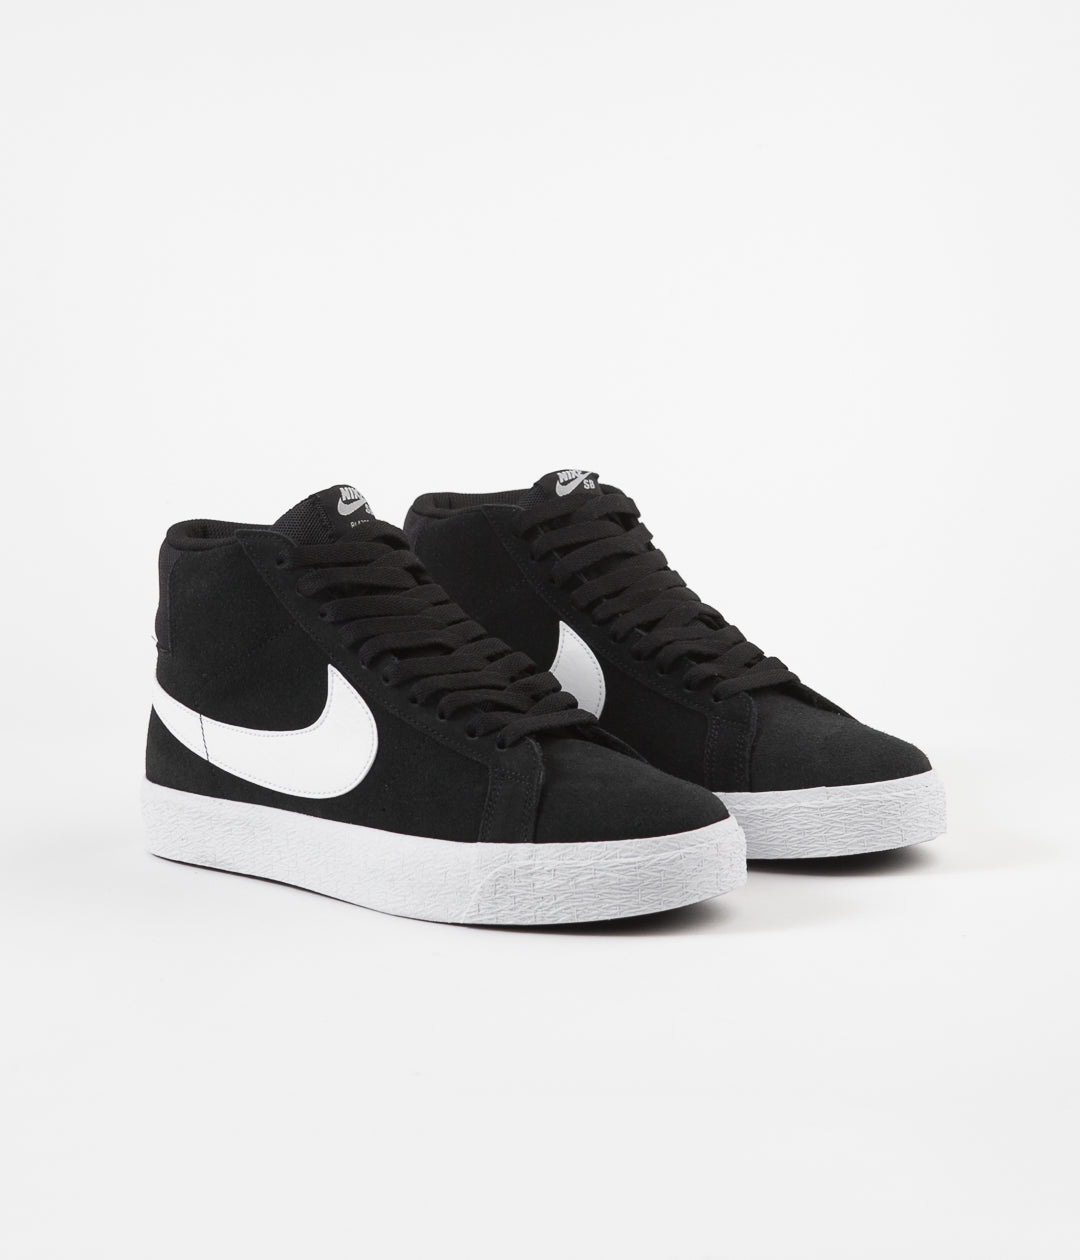 Nike SB Blazer Mid Shoes - Black / White - White - White